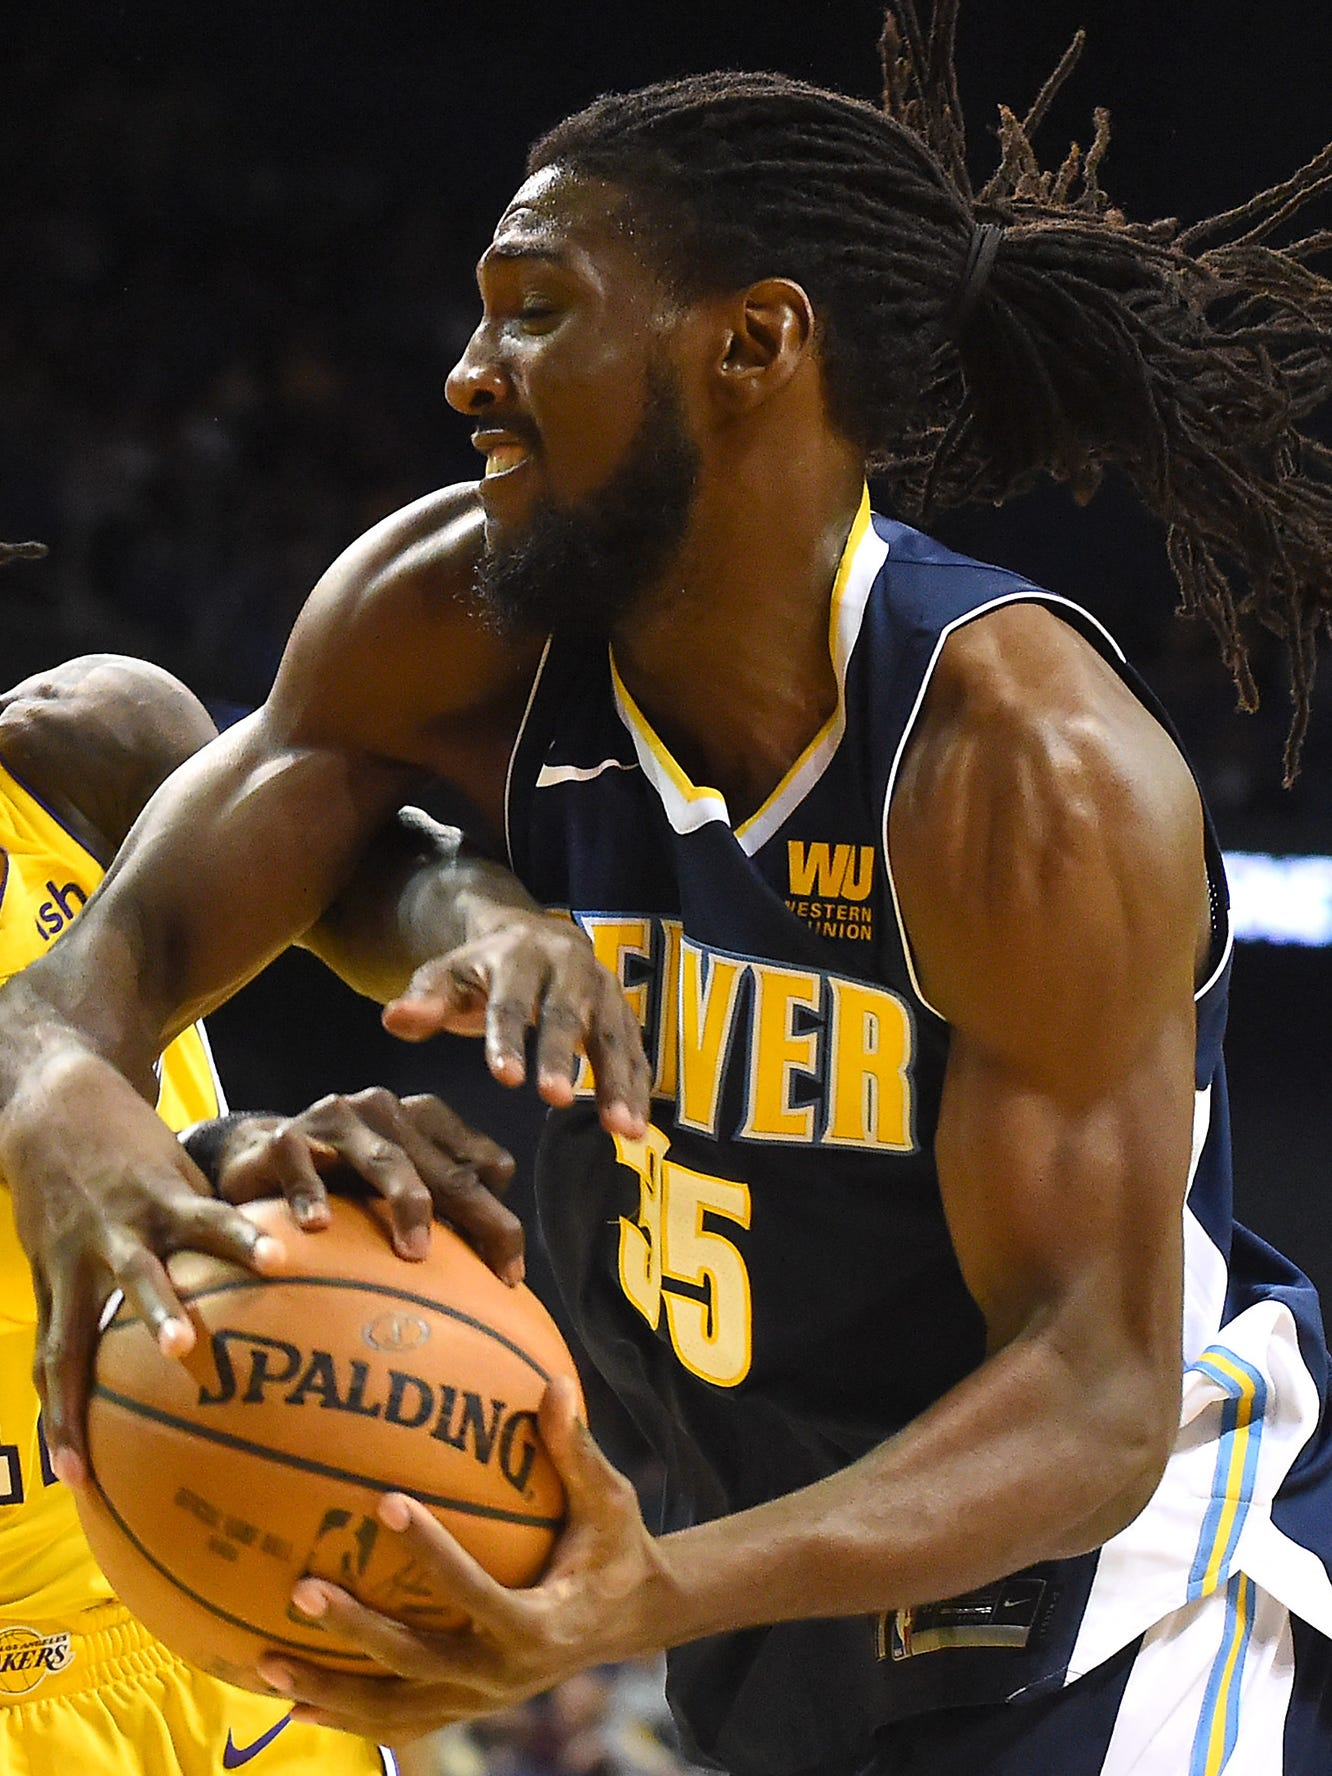 Oct 4, 2017; Ontario, CA, USA;  Denver Nuggets forward Kenneth Faried (35) and Los Angeles Lakers guard Briante Weber (12) battle for a rebound in the second half of the game at Citizens Business Bank Arena. Mandatory Credit: Jayne Kamin-Oncea-USA TODAY Sports ORG XMIT: USATSI-363500 ORIG FILE ID:  20171004_lbm_aj4_270.JPG